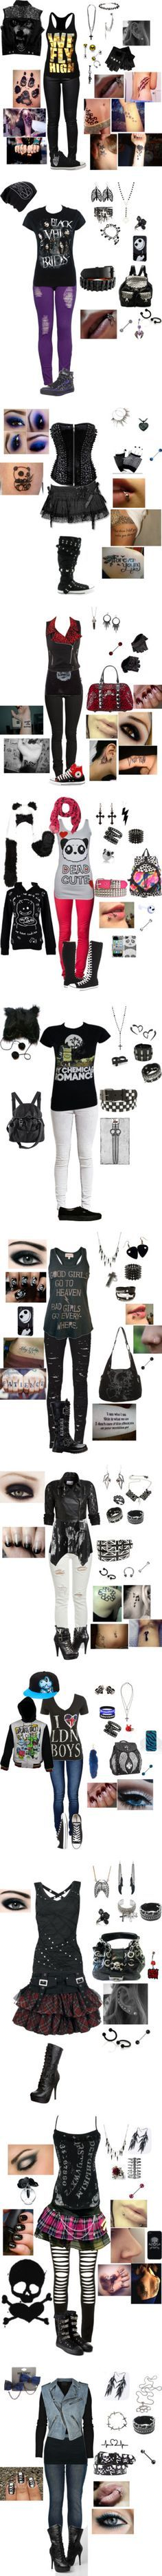 """""""""""Emo"""" clothes part 5 :)"""" by foreverbroken ❤ liked on Polyvore"""